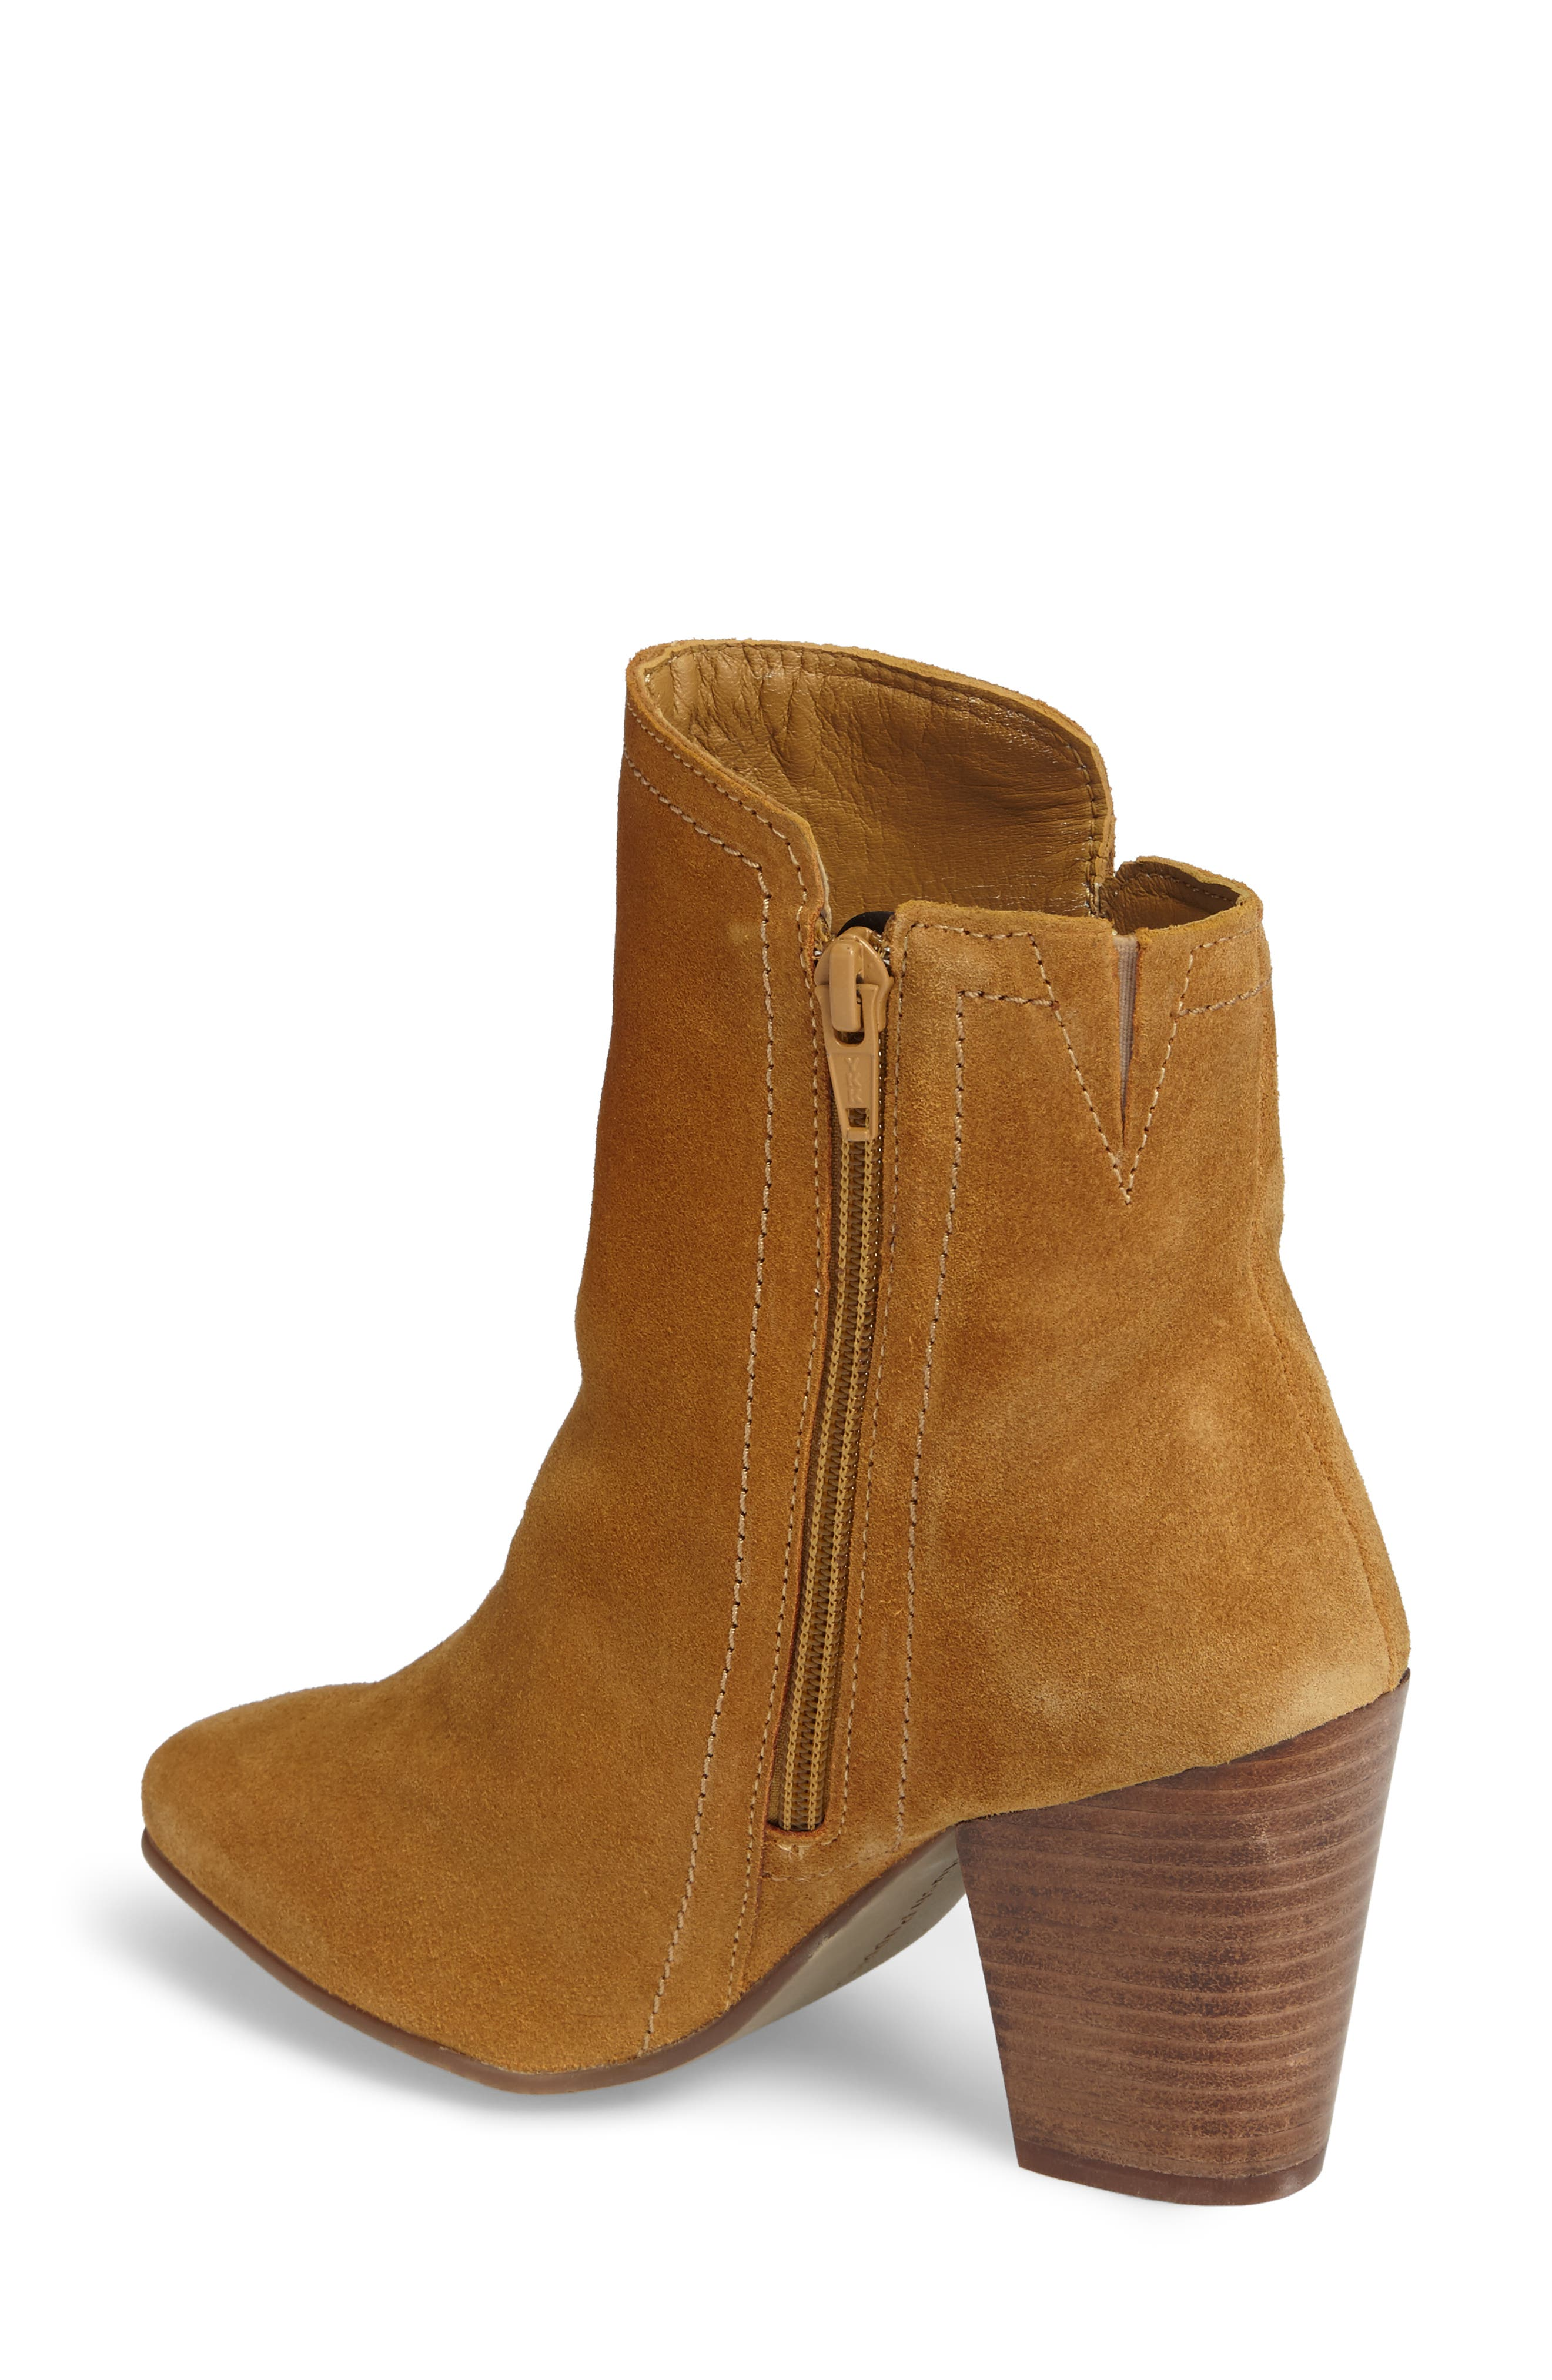 Daisee Billie Bootie,                             Alternate thumbnail 2, color,                             Camel Suede